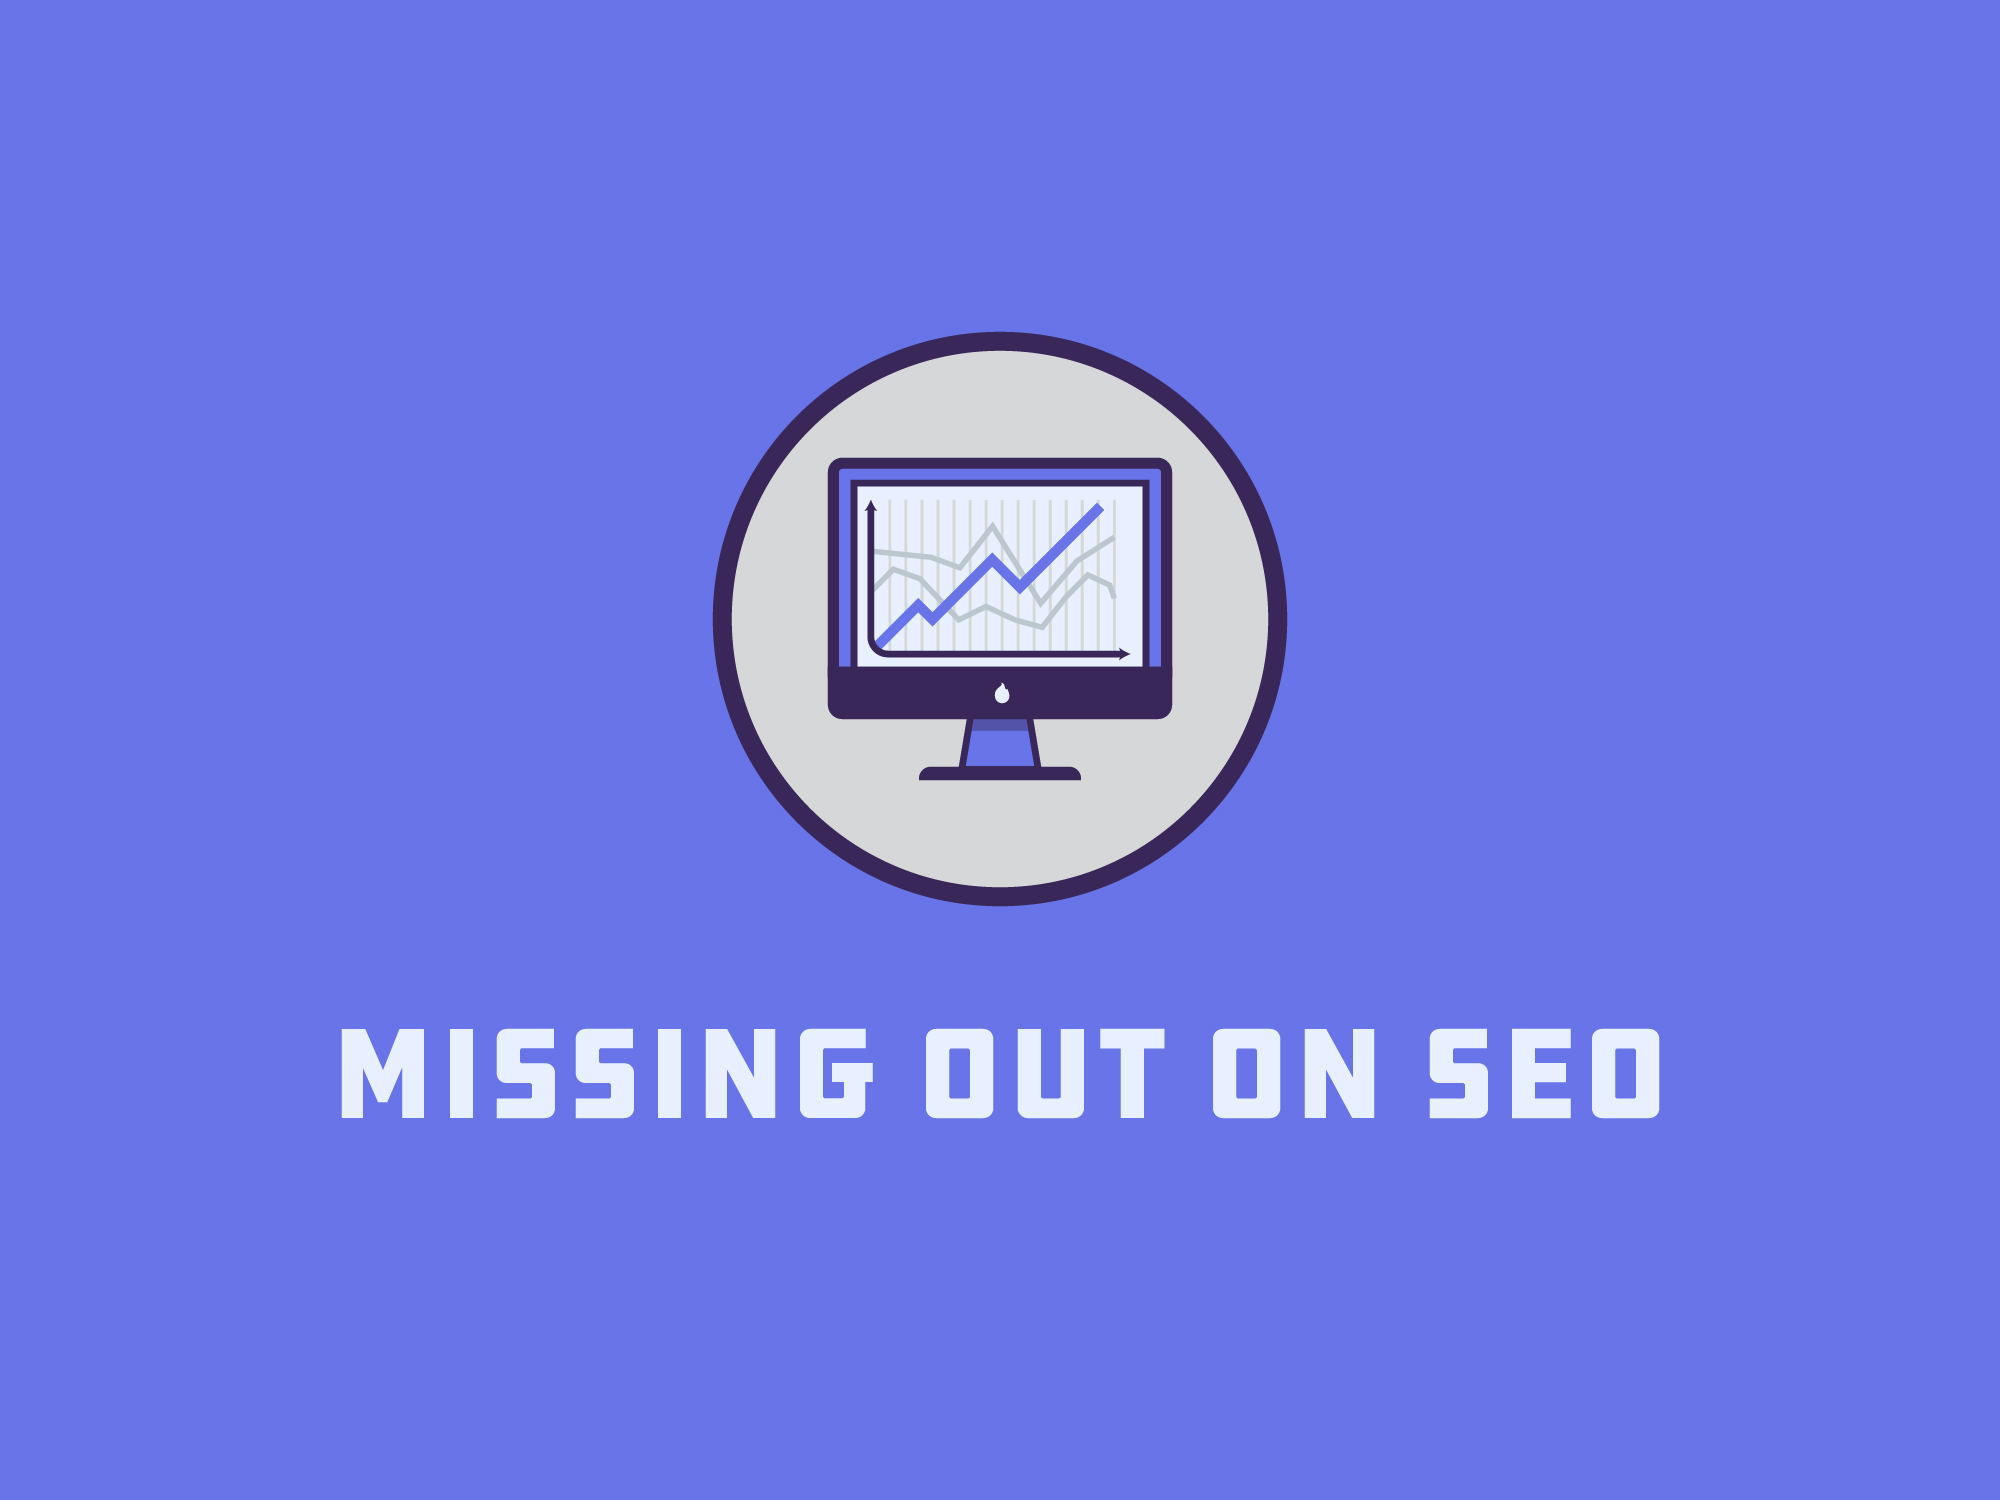 missing out on seo blog image